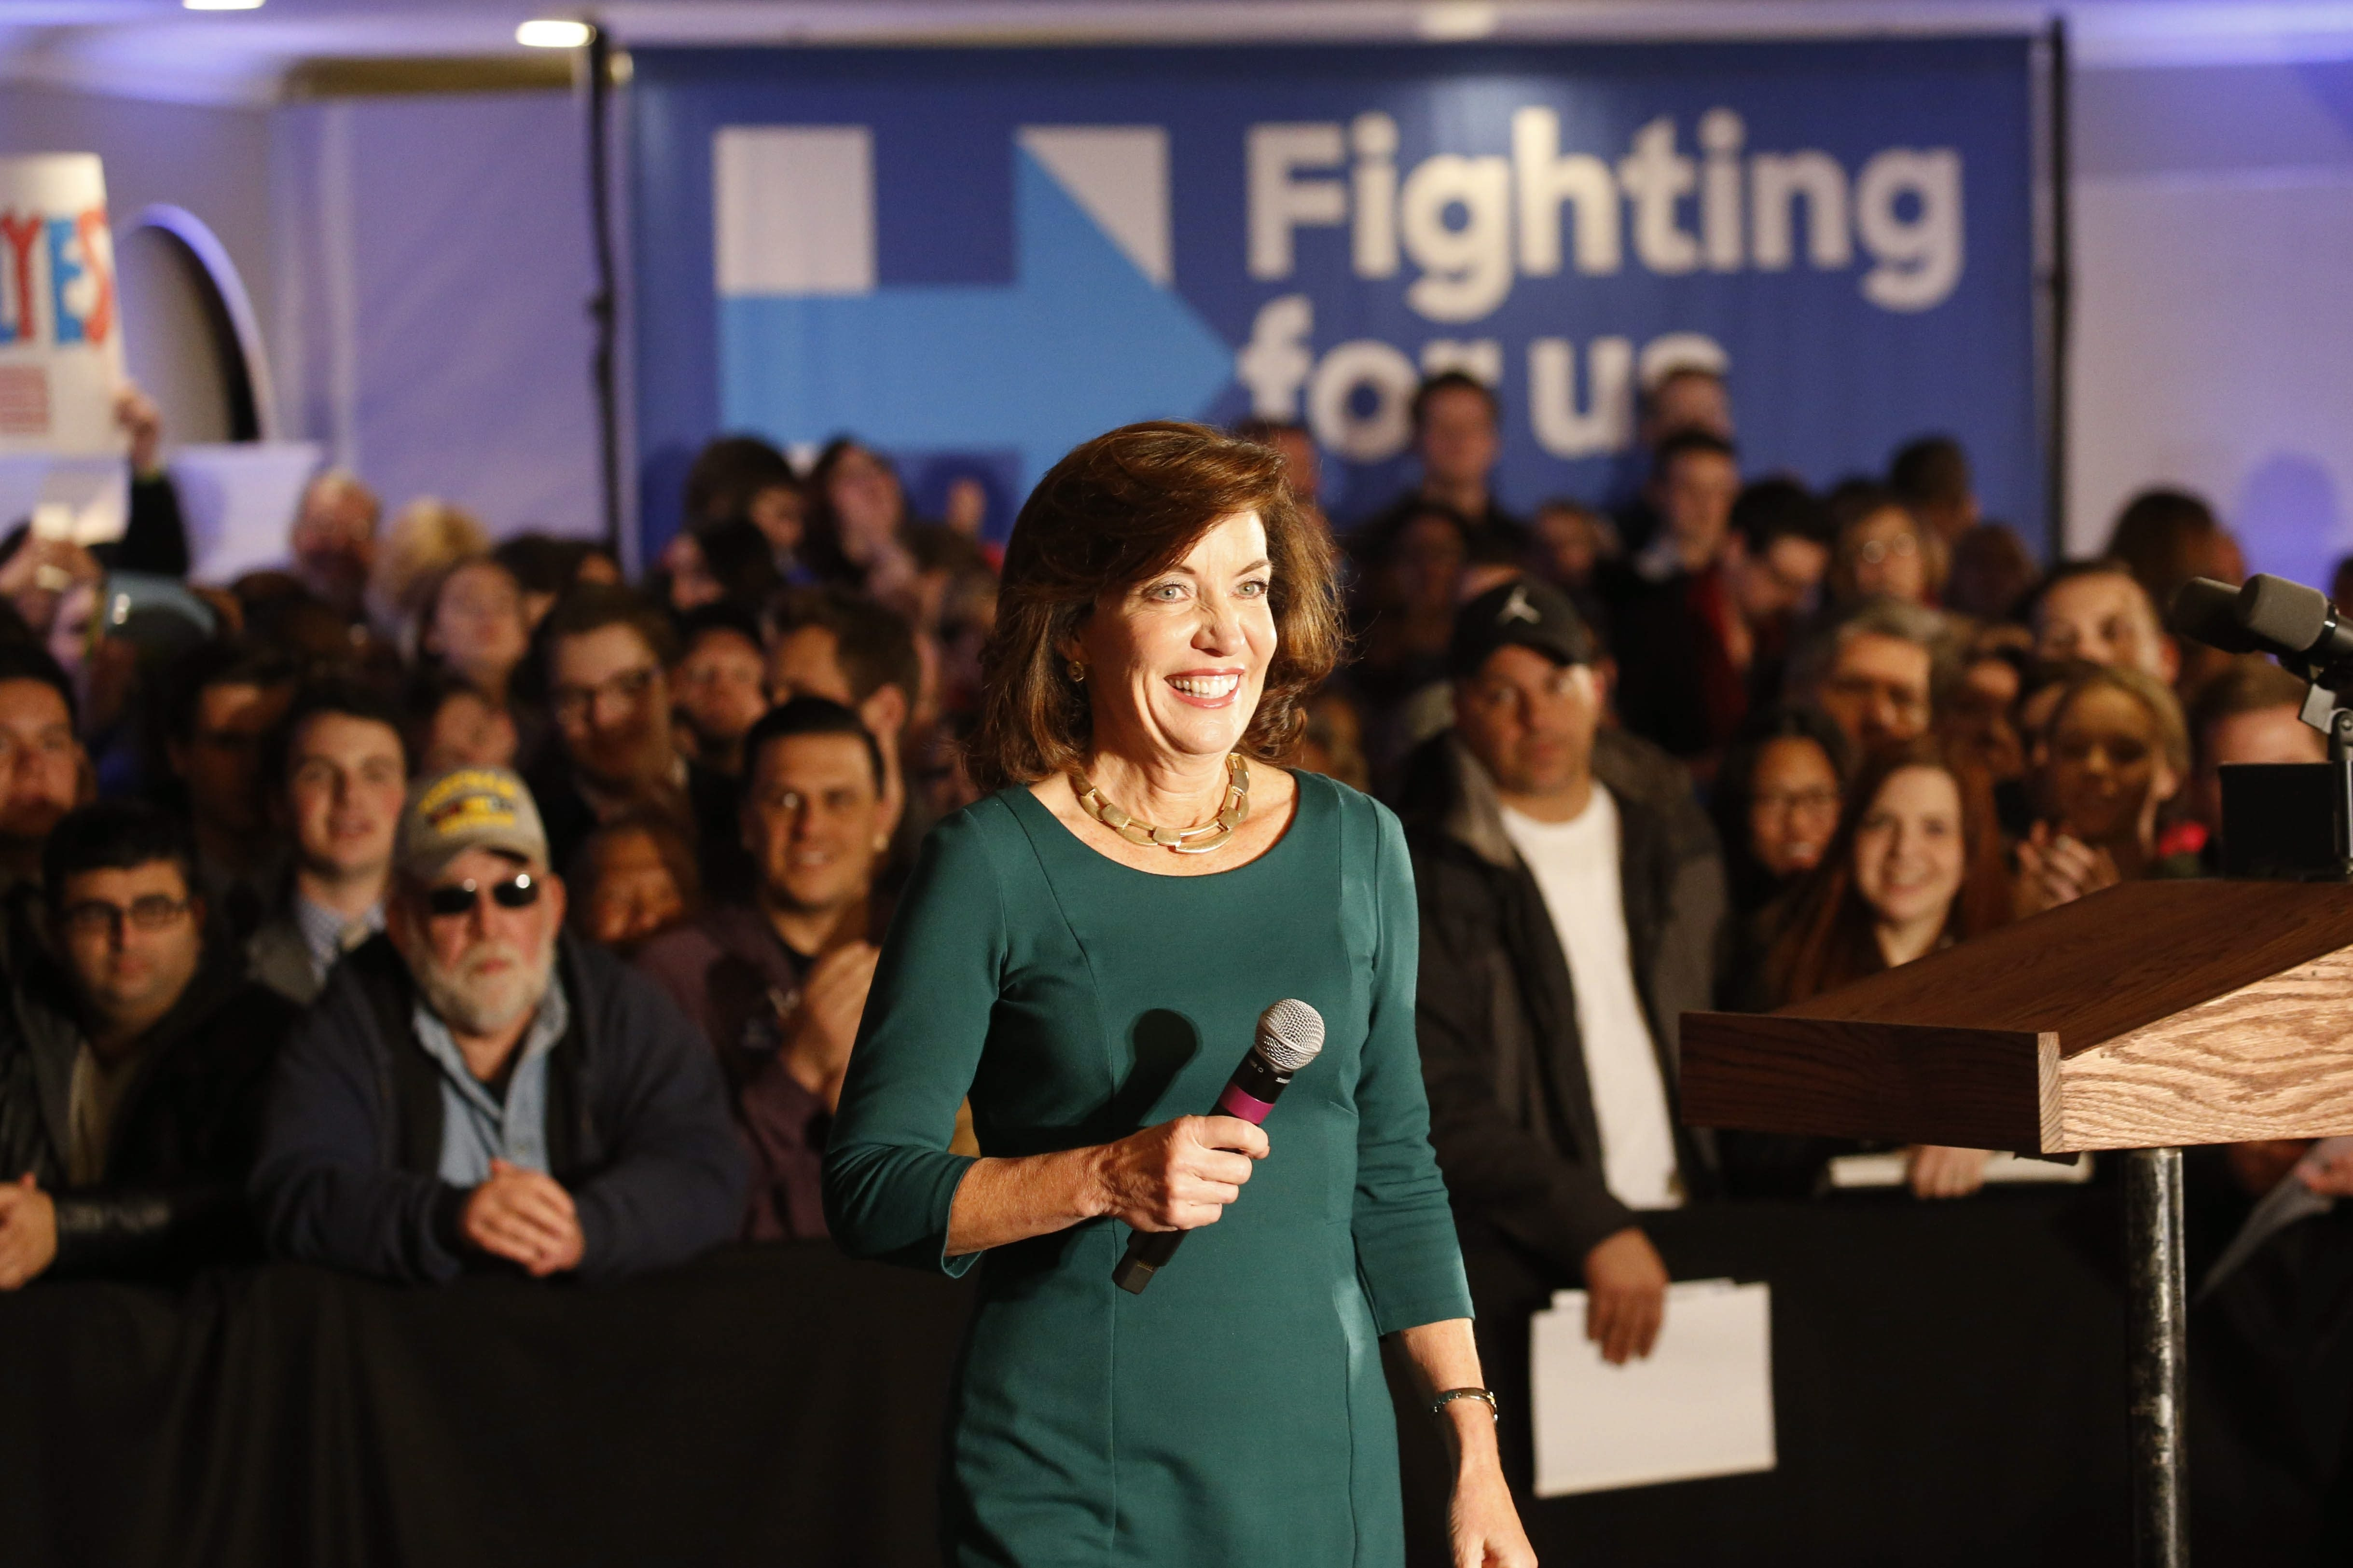 Lt. Gov. Kathy Hochul speaks at a campaign rally for Hillary Clinton in Depew. (Derek Gee/Buffalo News)